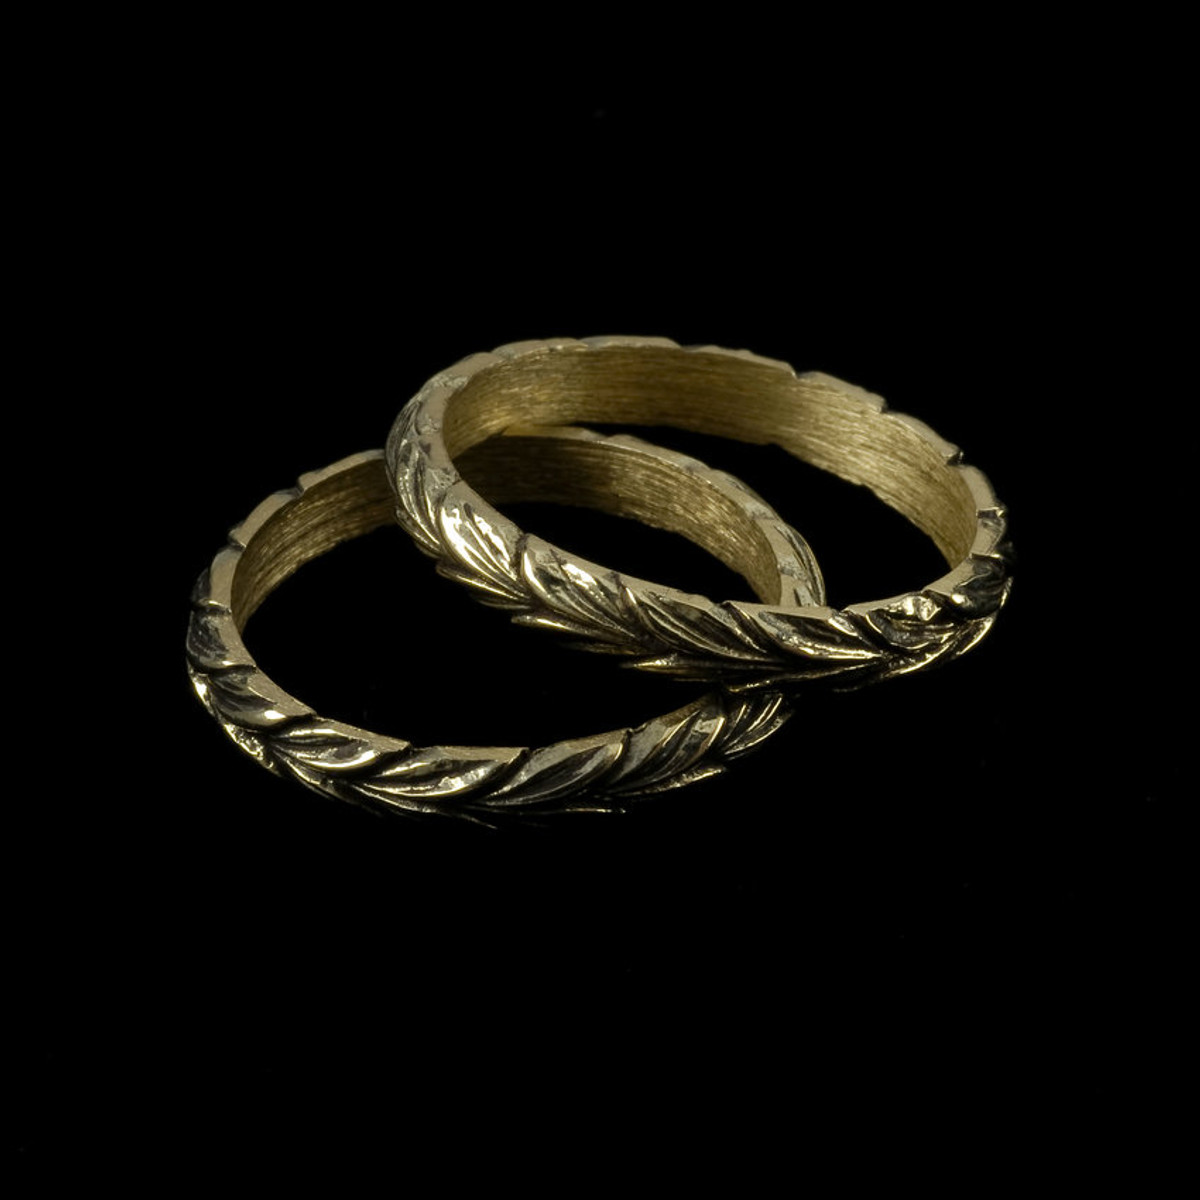 winding cohen bands leaf rose leaves band art gold ring engraved shop unique wedding guy